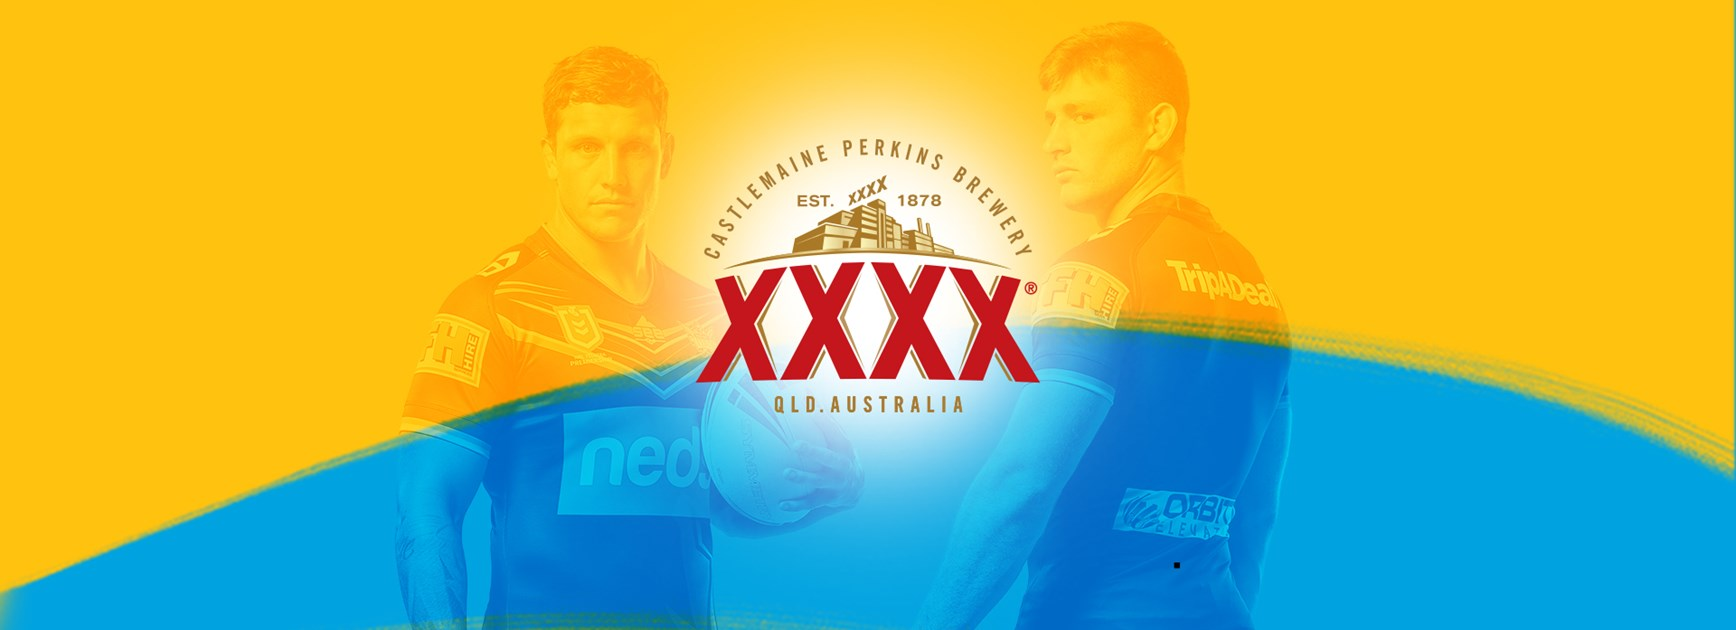 Don't Miss the XXXX Big Queenslander Titans Ticket Offer